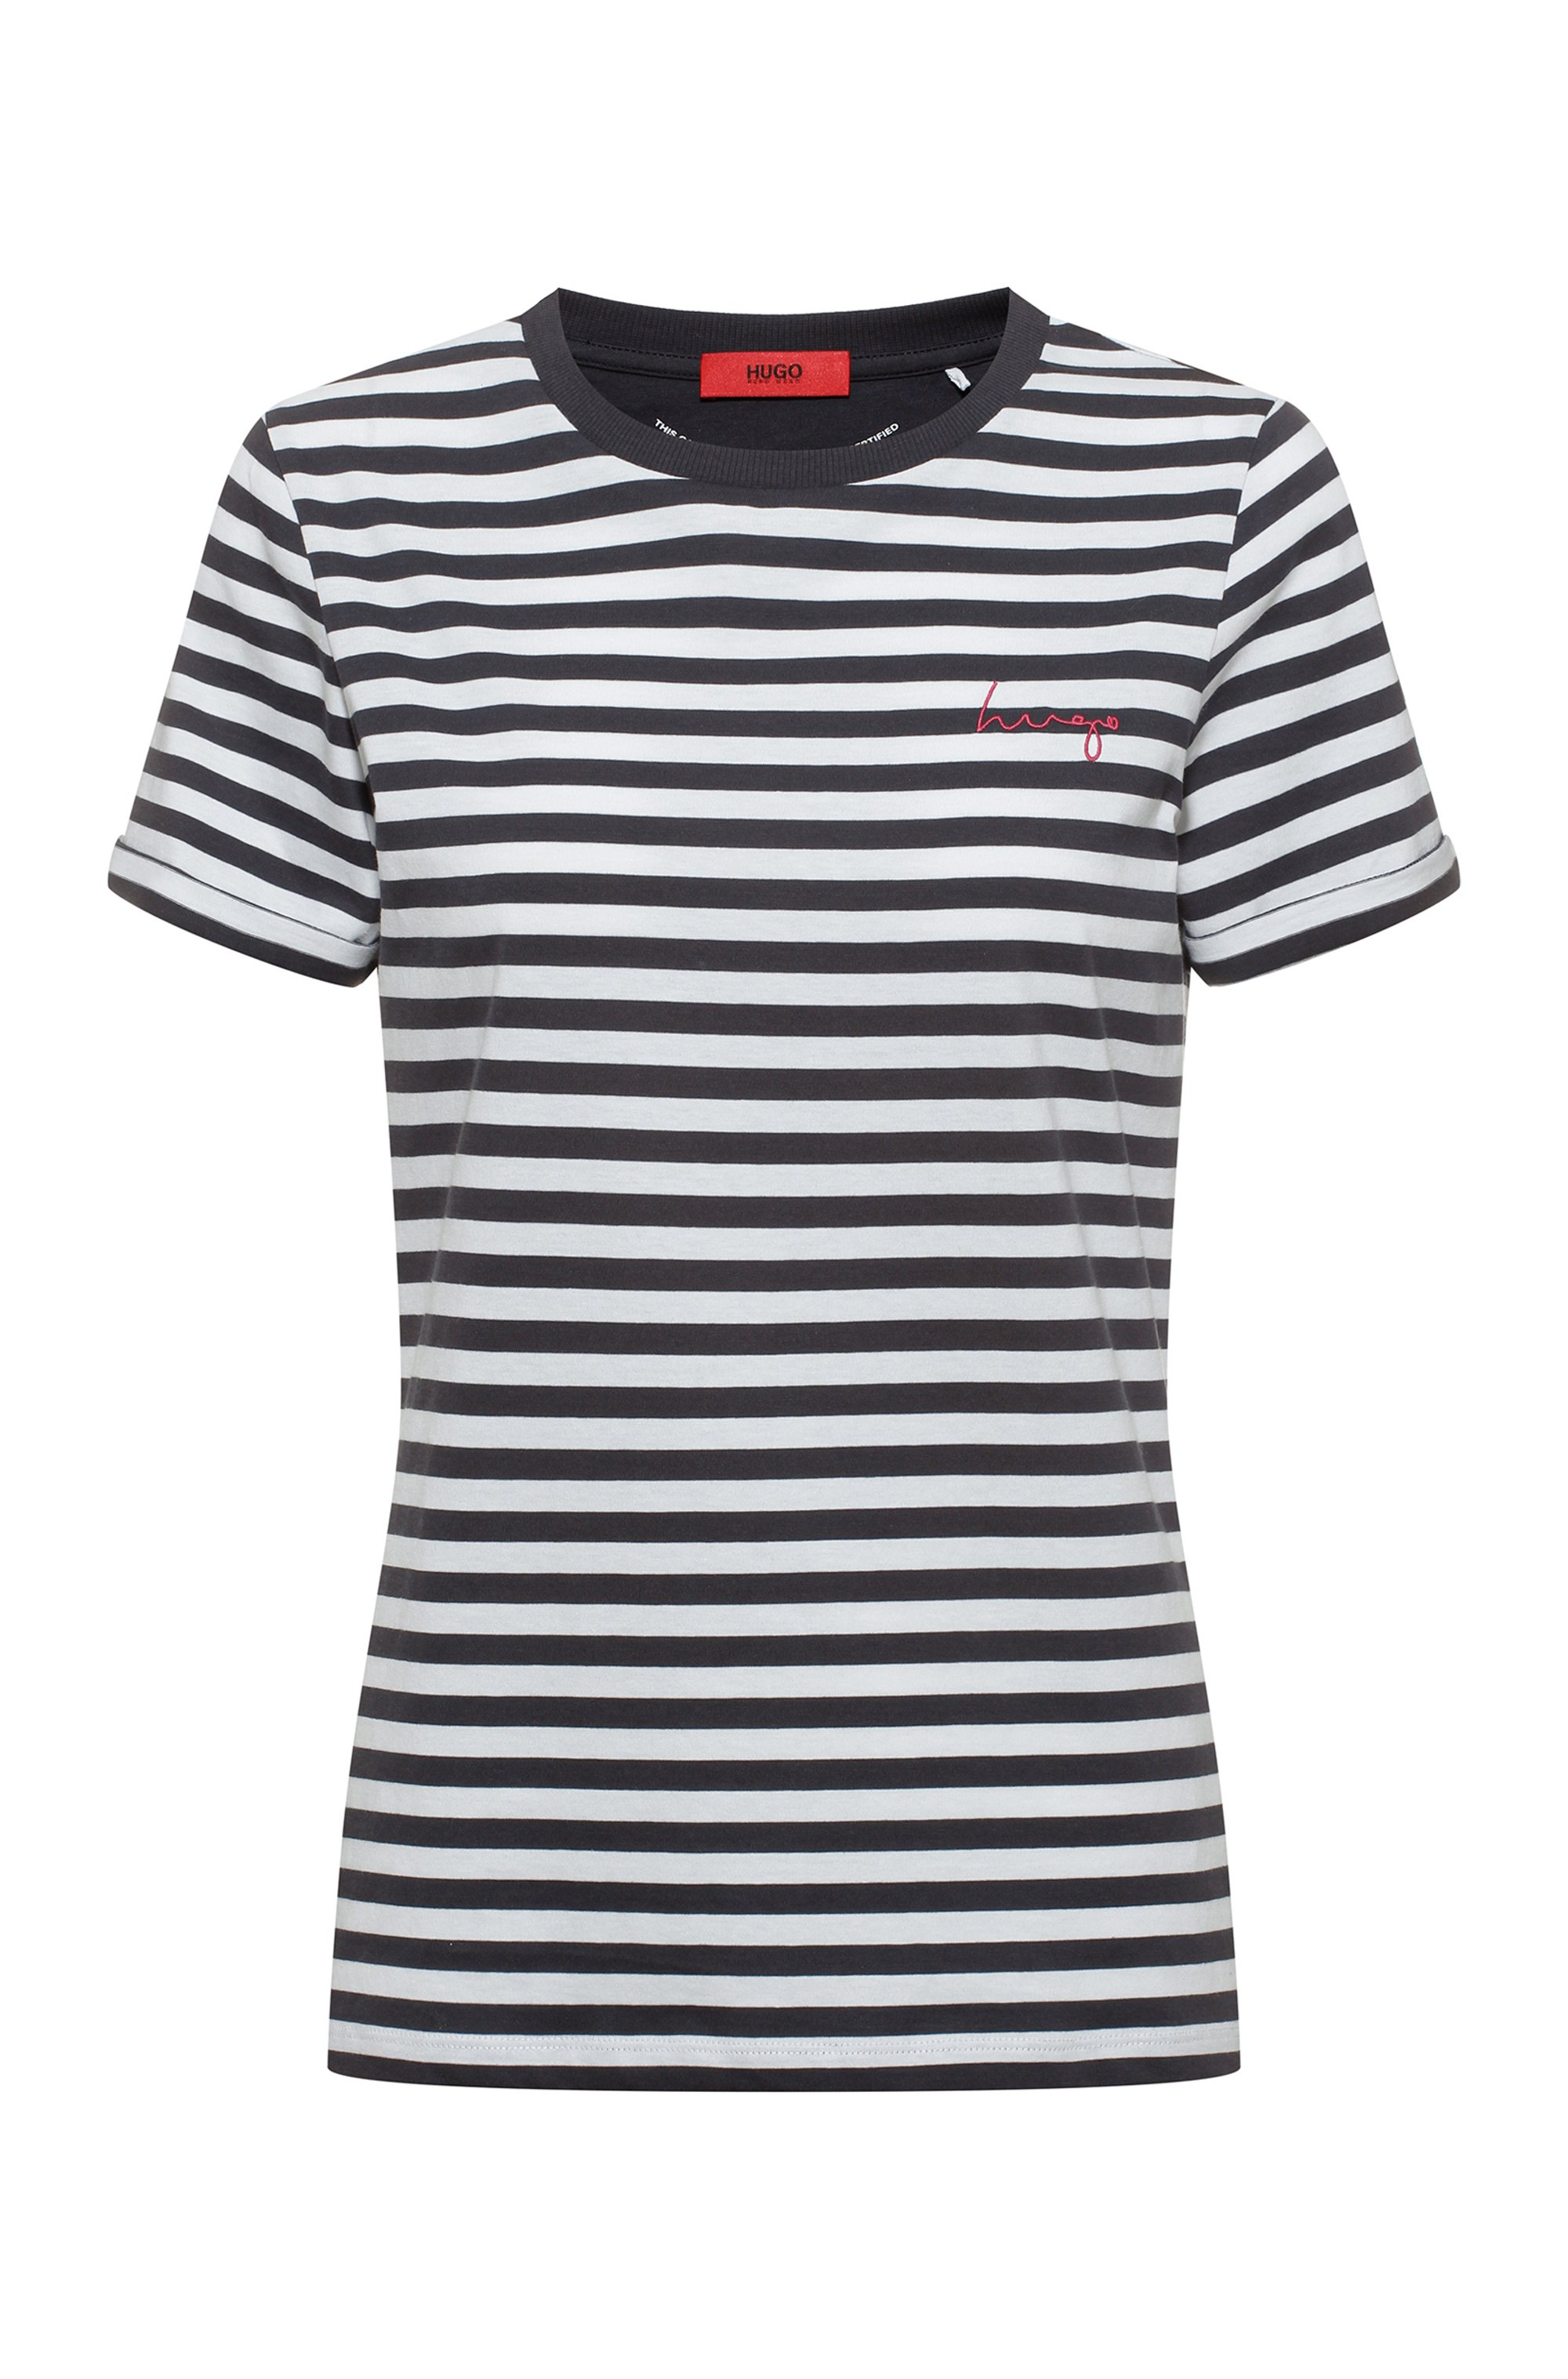 Striped slim-fit T-shirt in organic-cotton jersey, Patterned